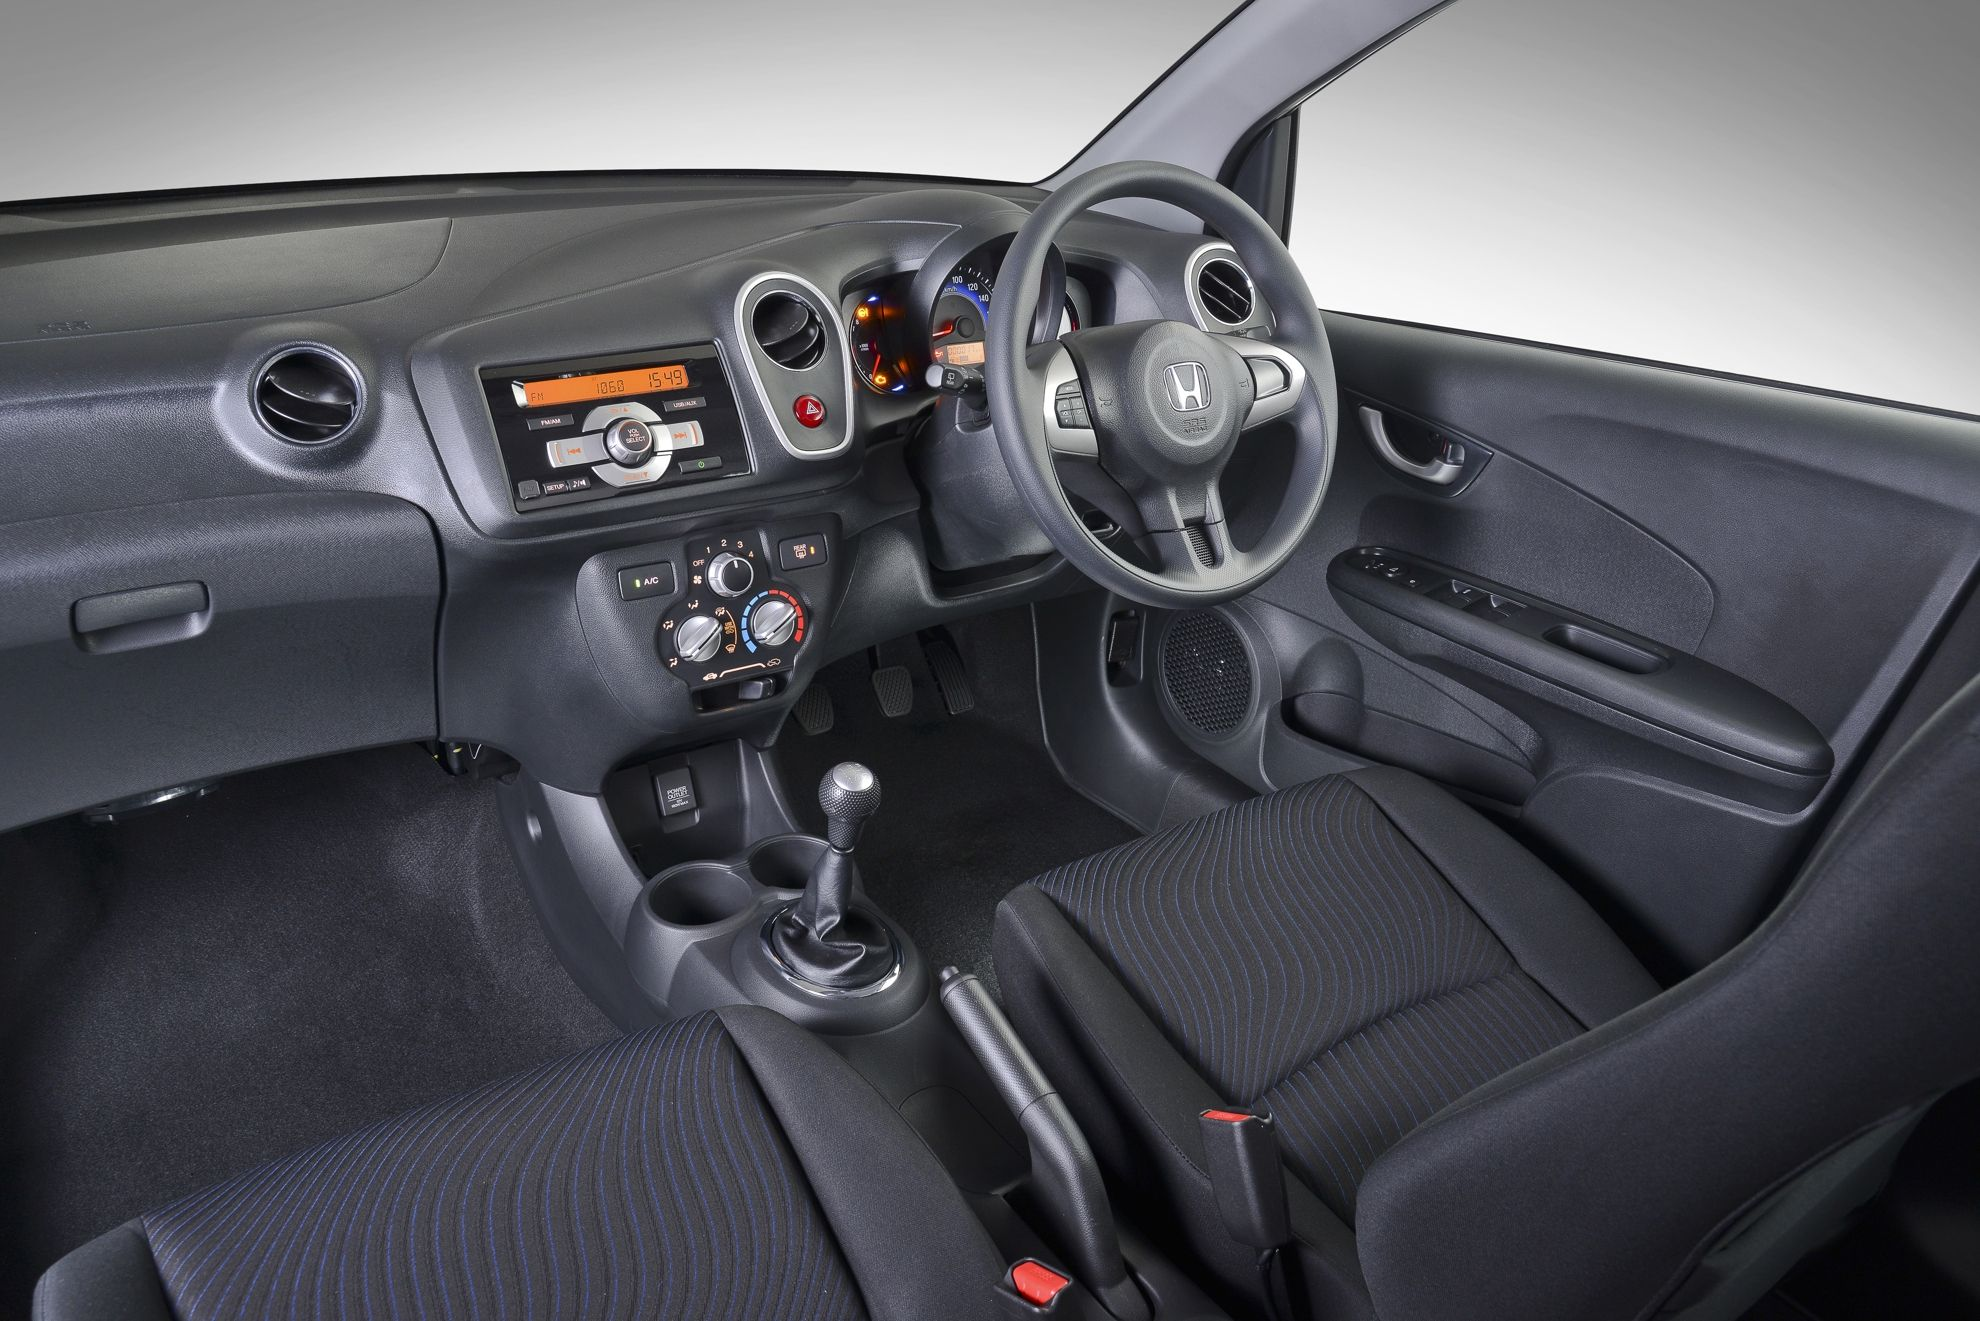 2015 Honda Mobilio Interior Wide Hd Wallpaper Reviews Price Spec And Pictures Hd Wallpaper Wallpaper Honda